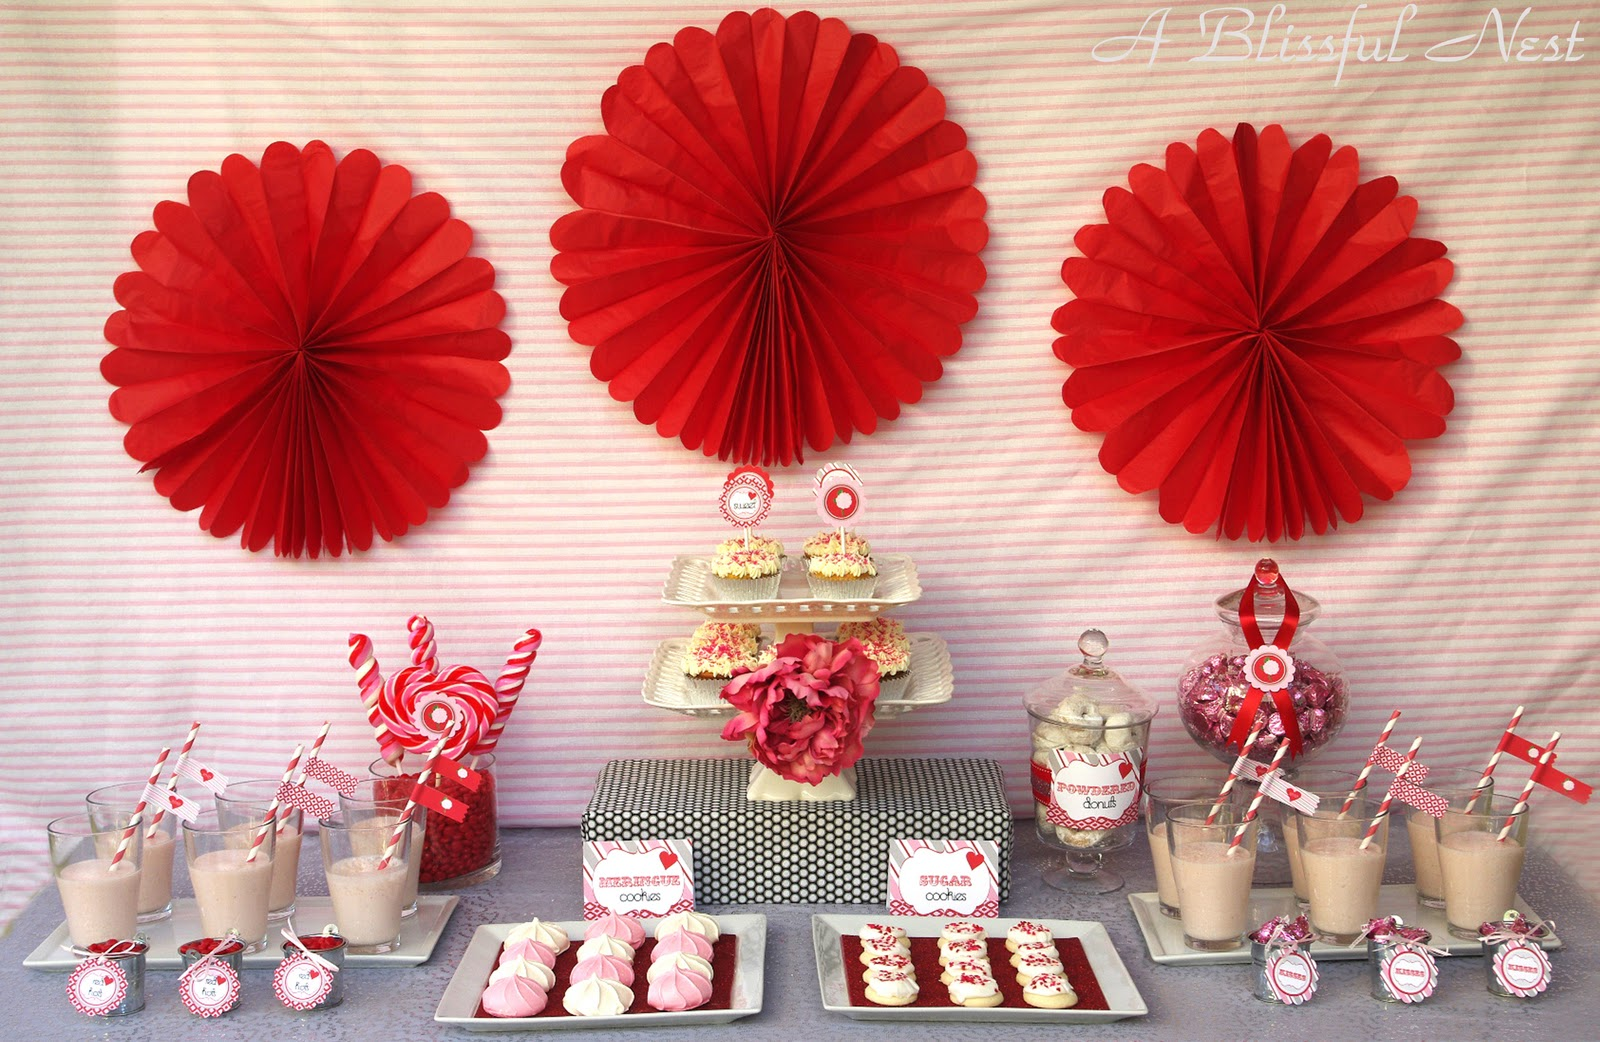 Vintage Sweet Valentines Inspiration Table By Blissful Nest A